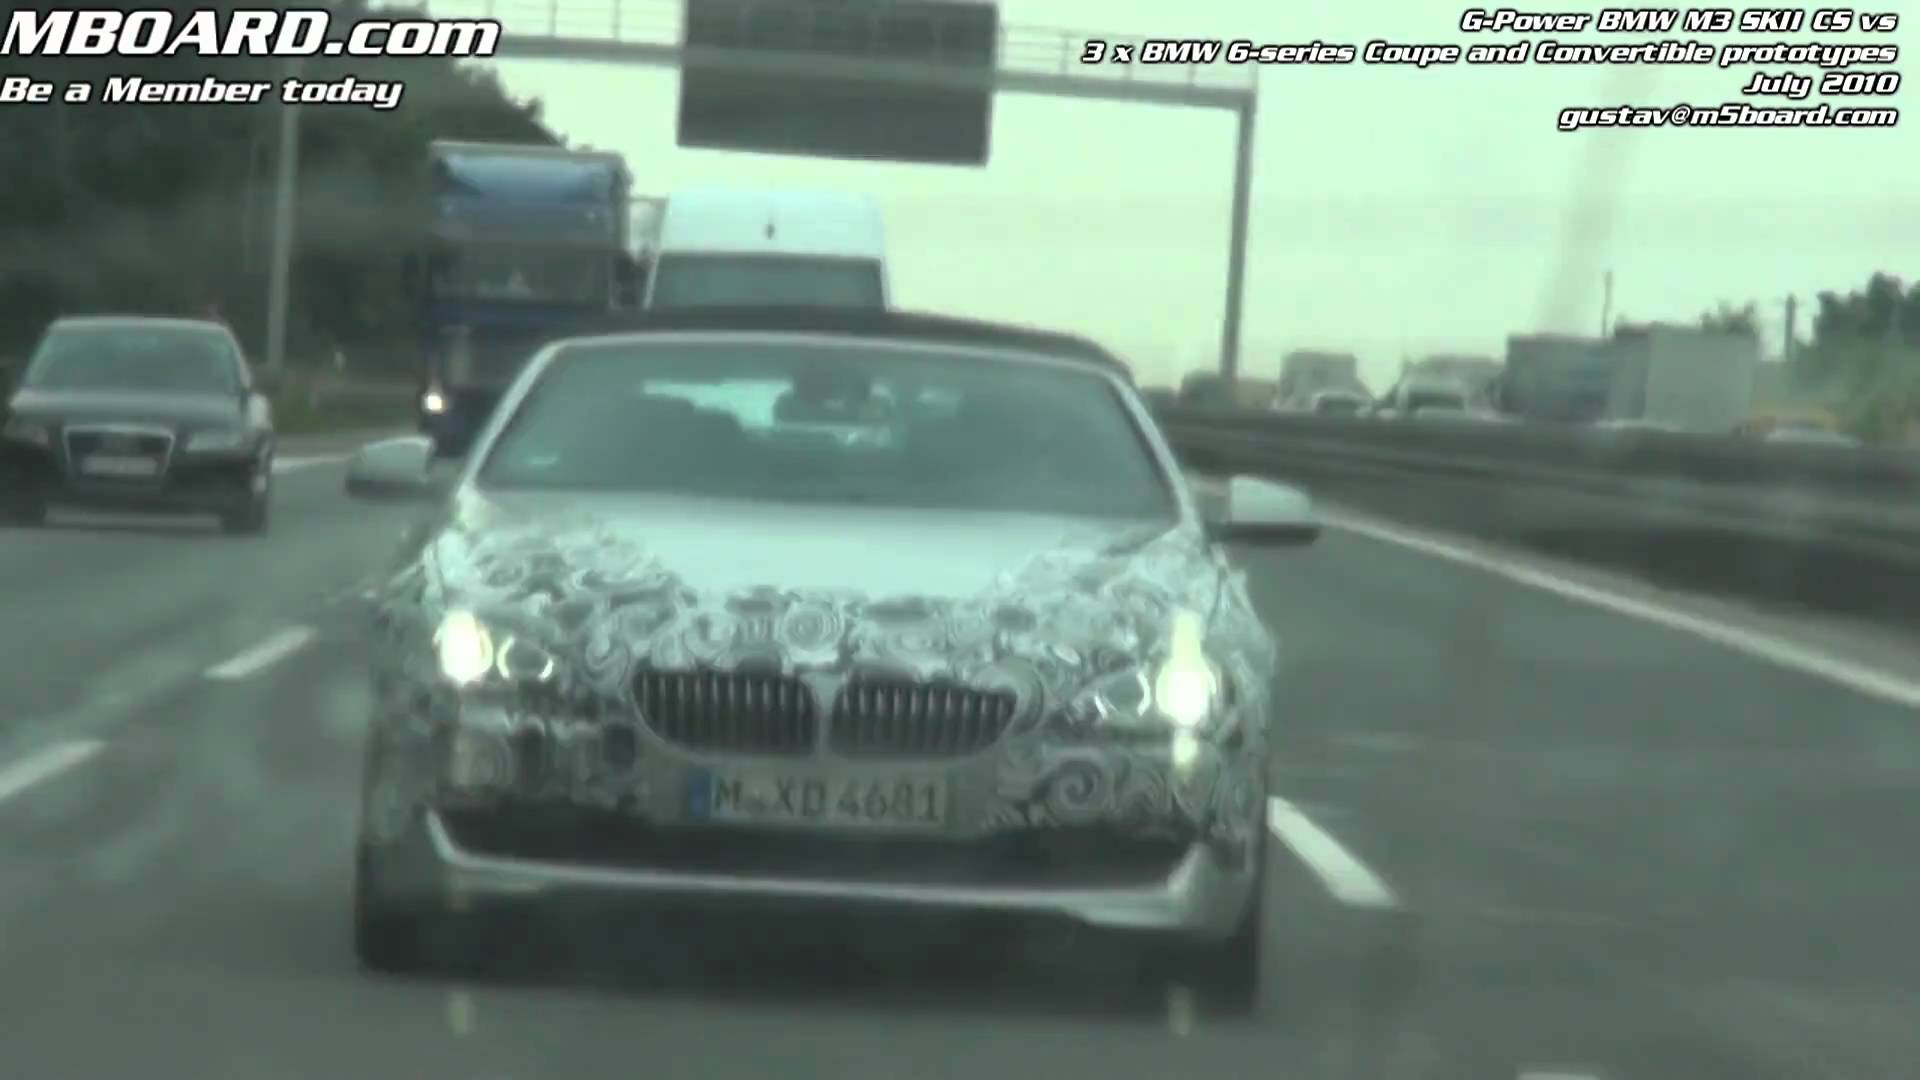 New BMW 6-series prototype Coupe and Convertible F13 chased by G-Power BMW M3 SKII CS DKG | DCT